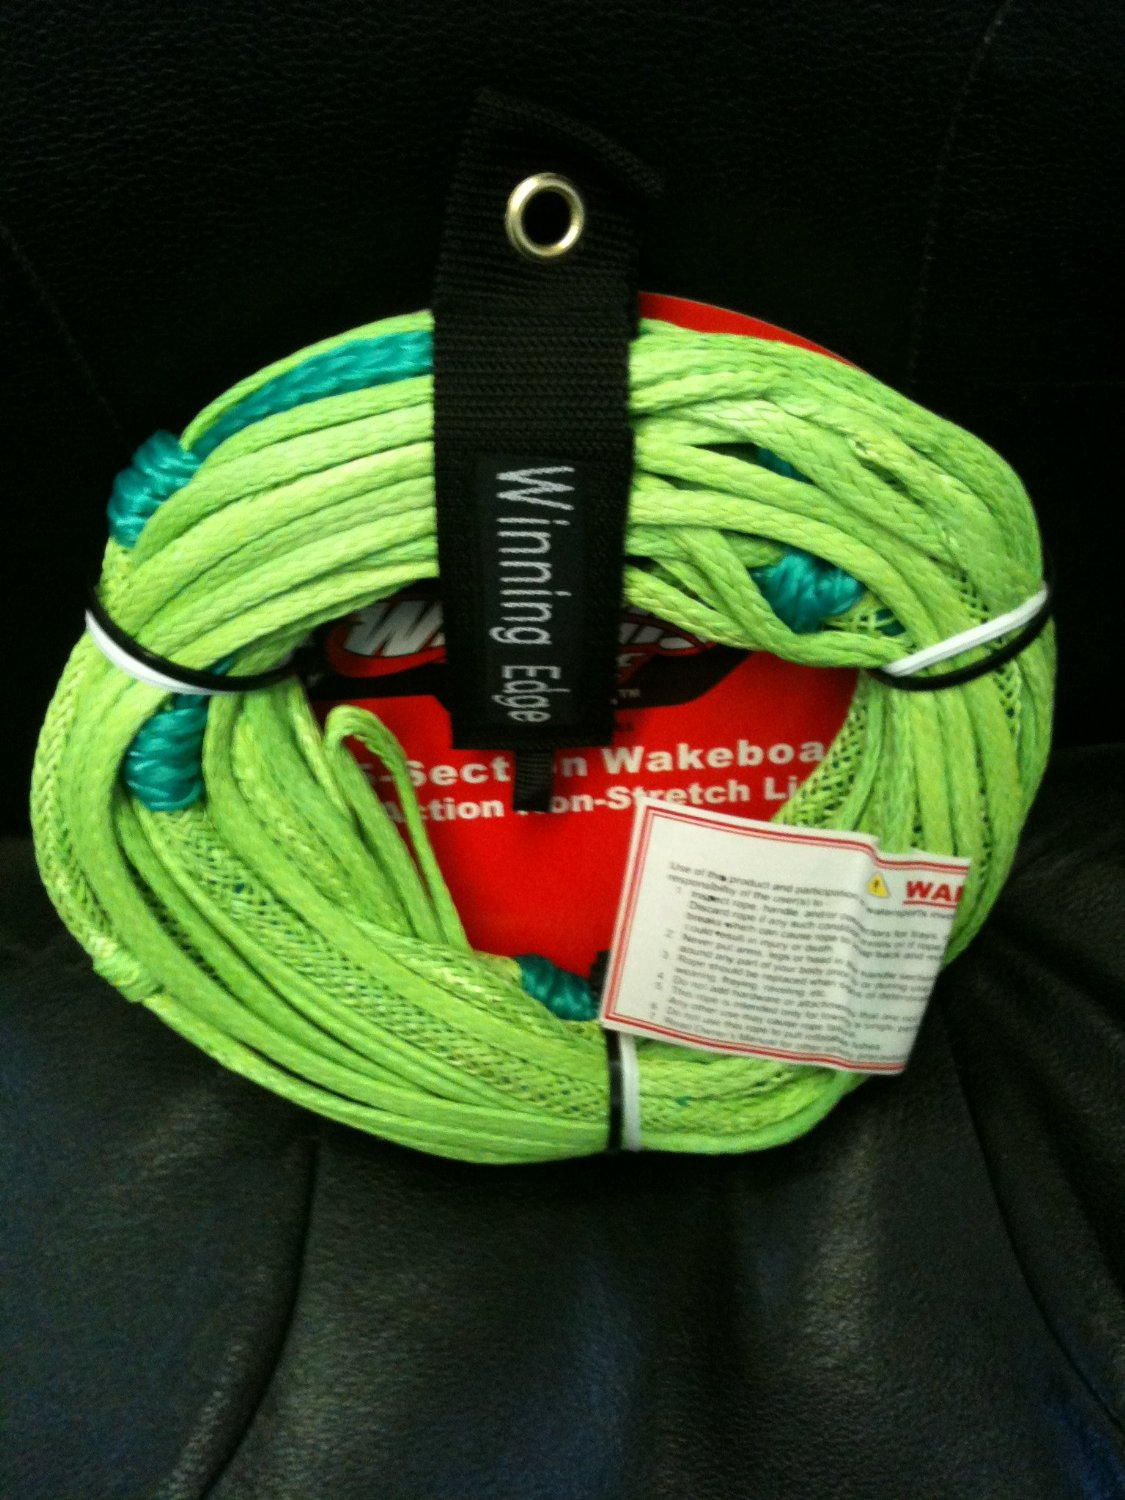 Winning Edge 70' 5-Section Wakeboard Pro Action Non-Stretch Line, Green